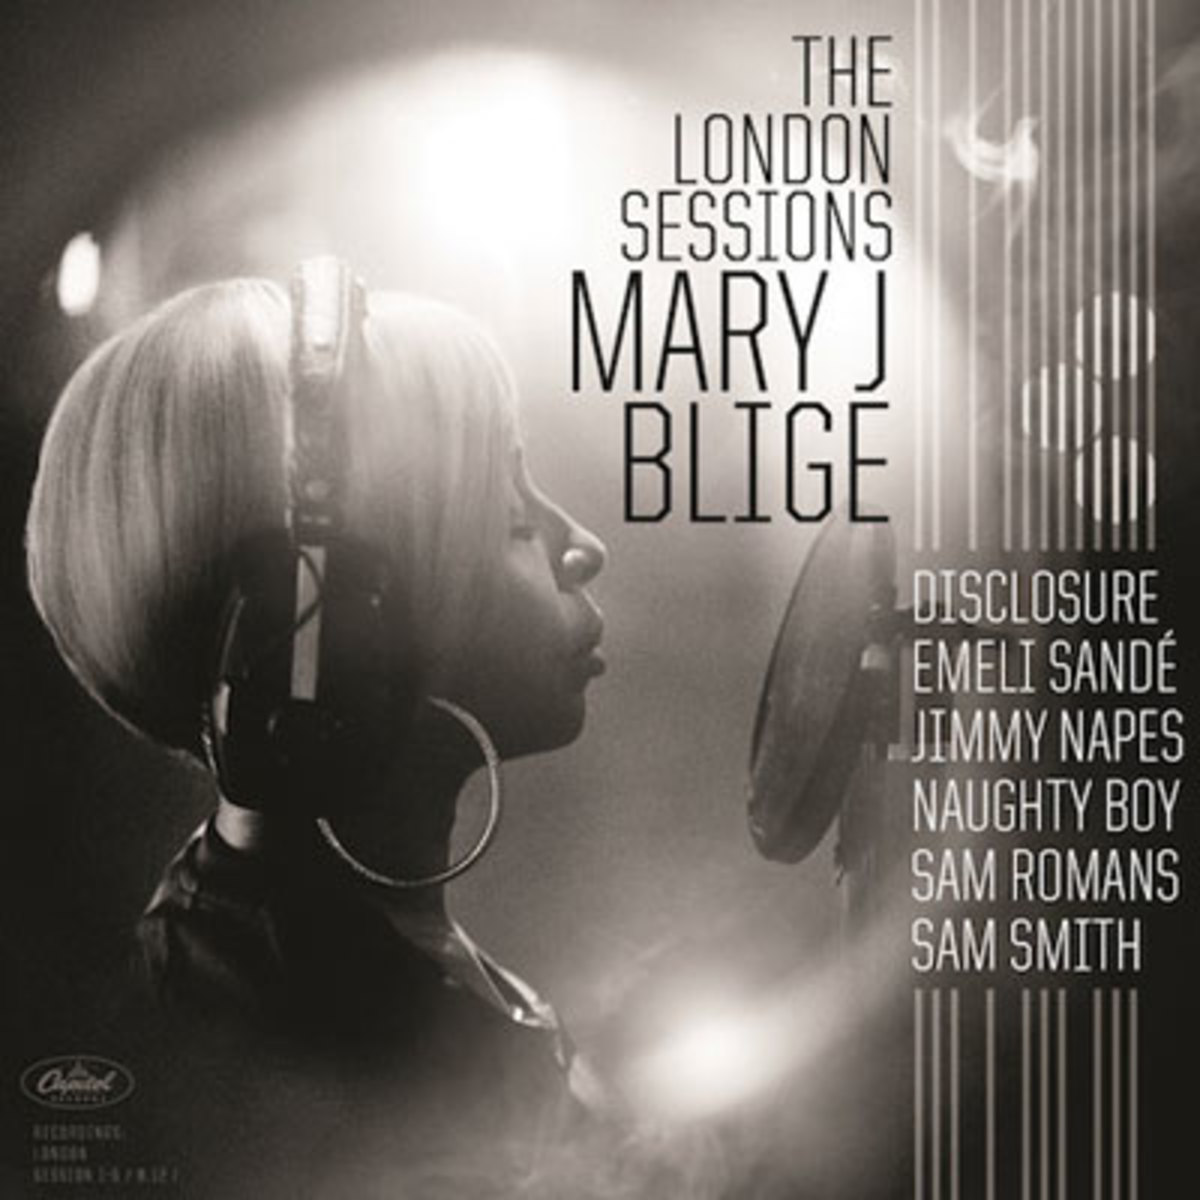 maryjb-thelondonsessions.jpg